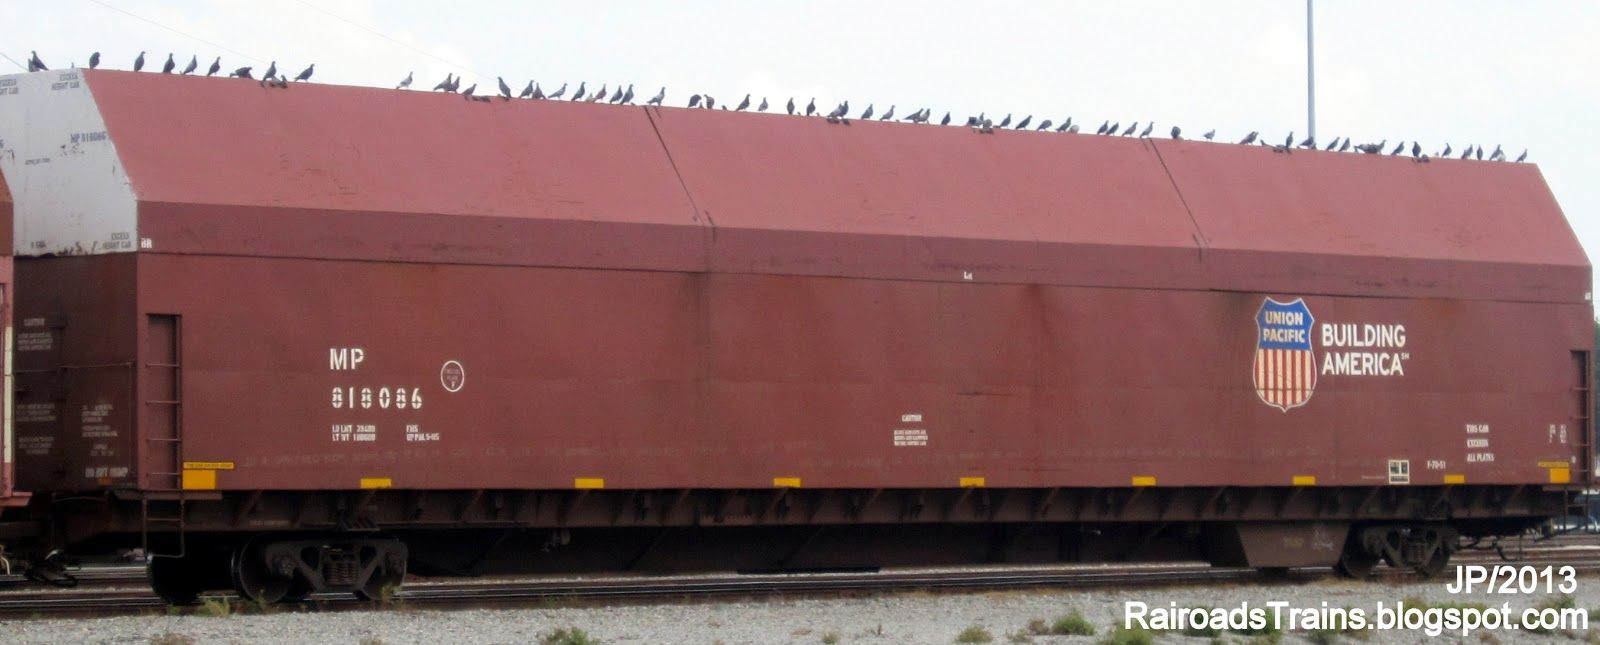 Mp 818086 Covered Aircraft Parts Railcar Missouri Pacific